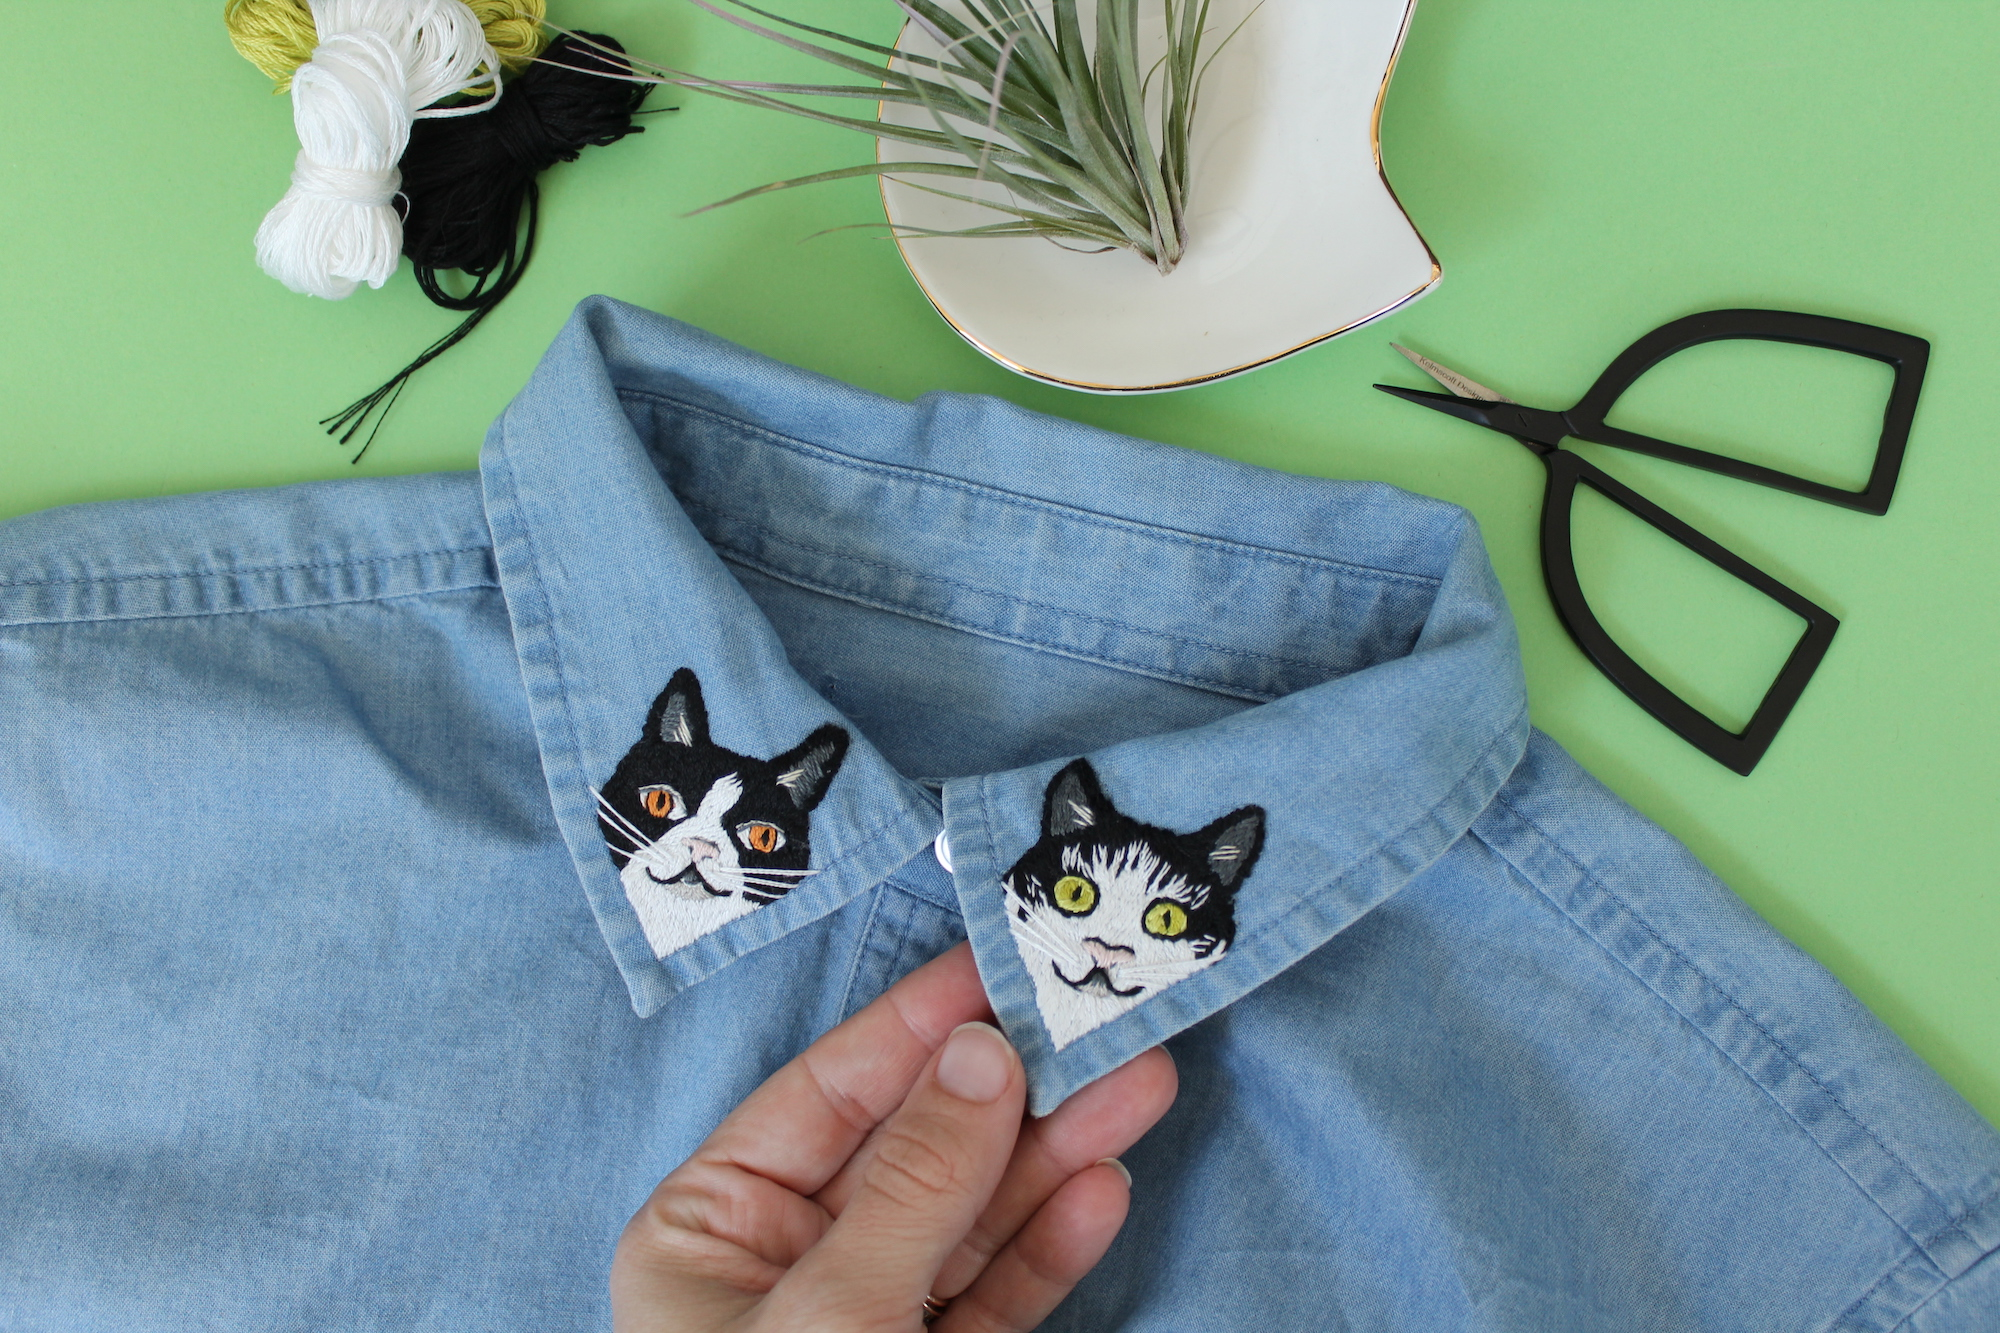 Embroidered collars with cats on them